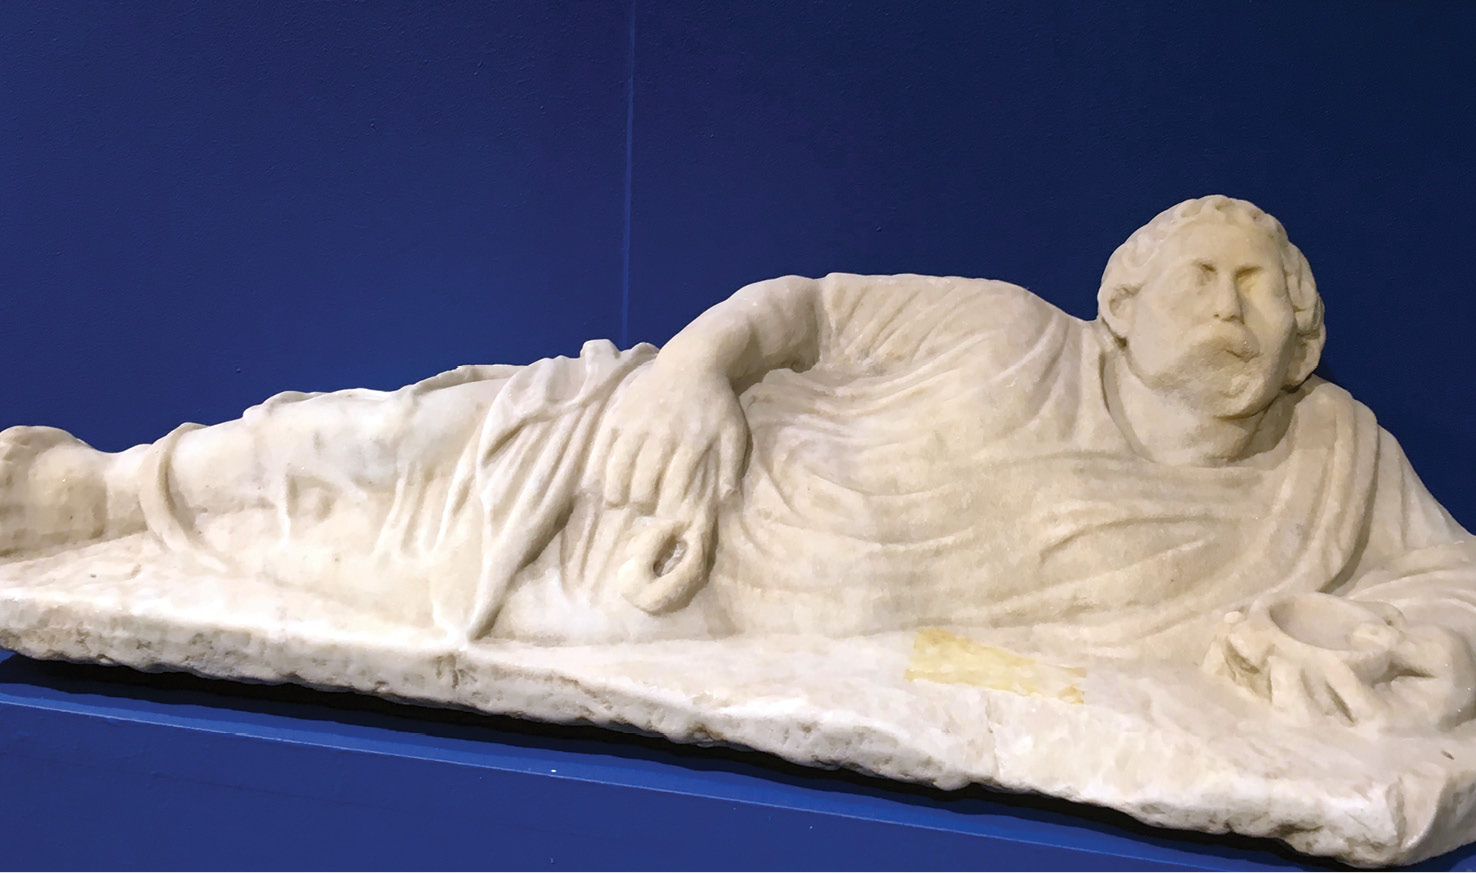 below A marble statue of a moustachioed man reclining on a dining couch at Genoa's Museo di Archeologia Ligure.